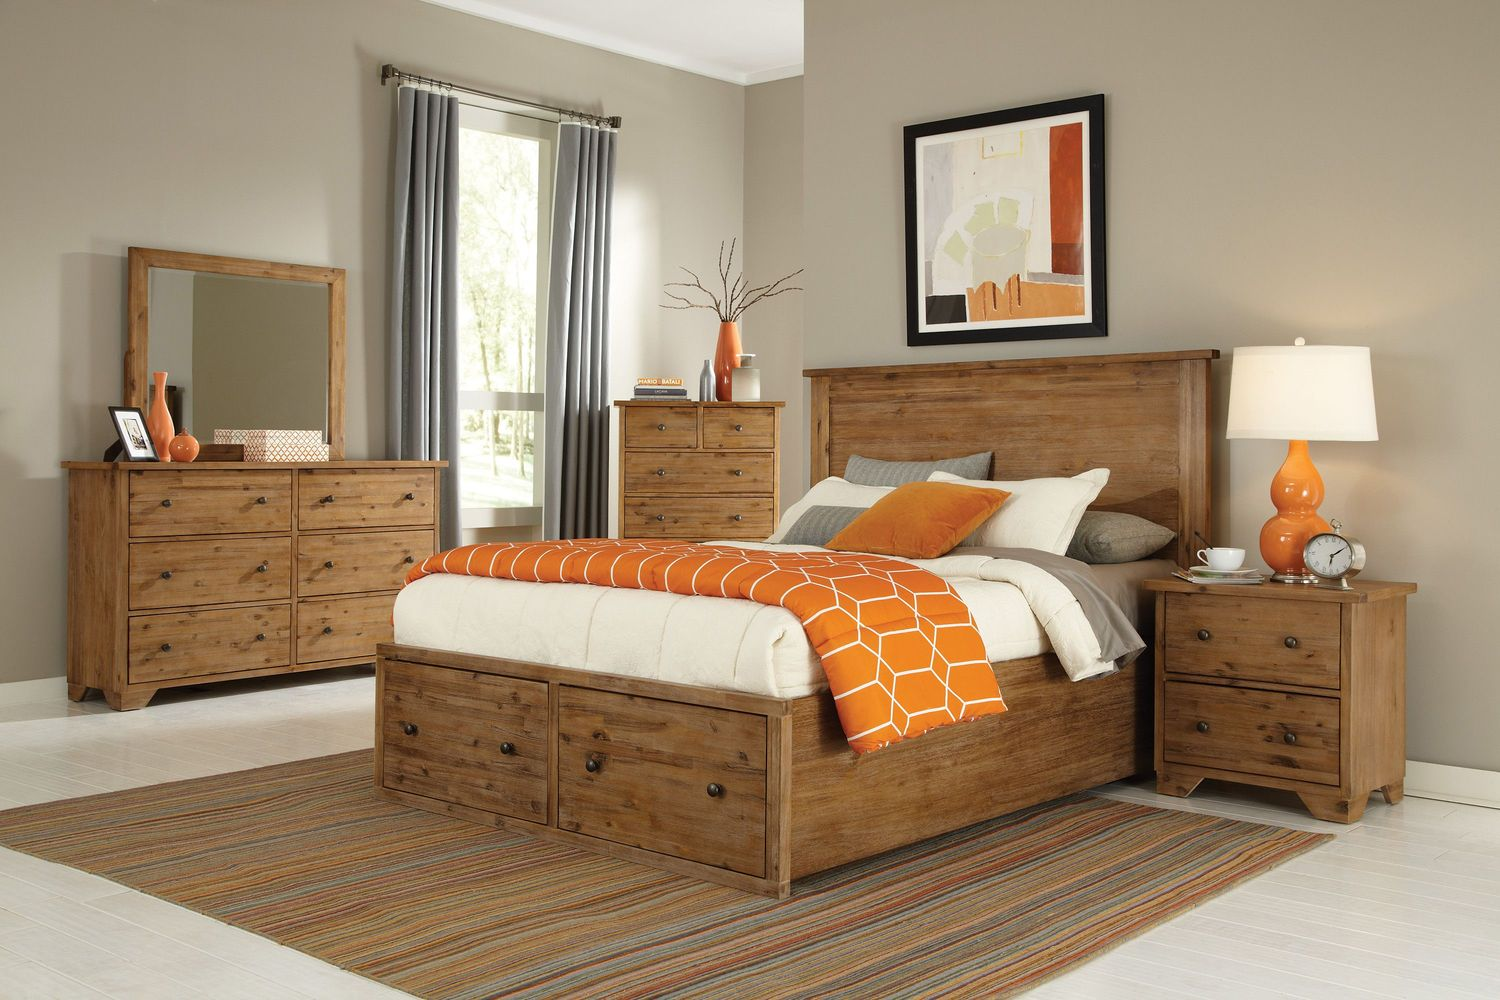 Bedroom Furniture - Annabella 4-Piece King Storage Bedroom Set - Brushed Acacia